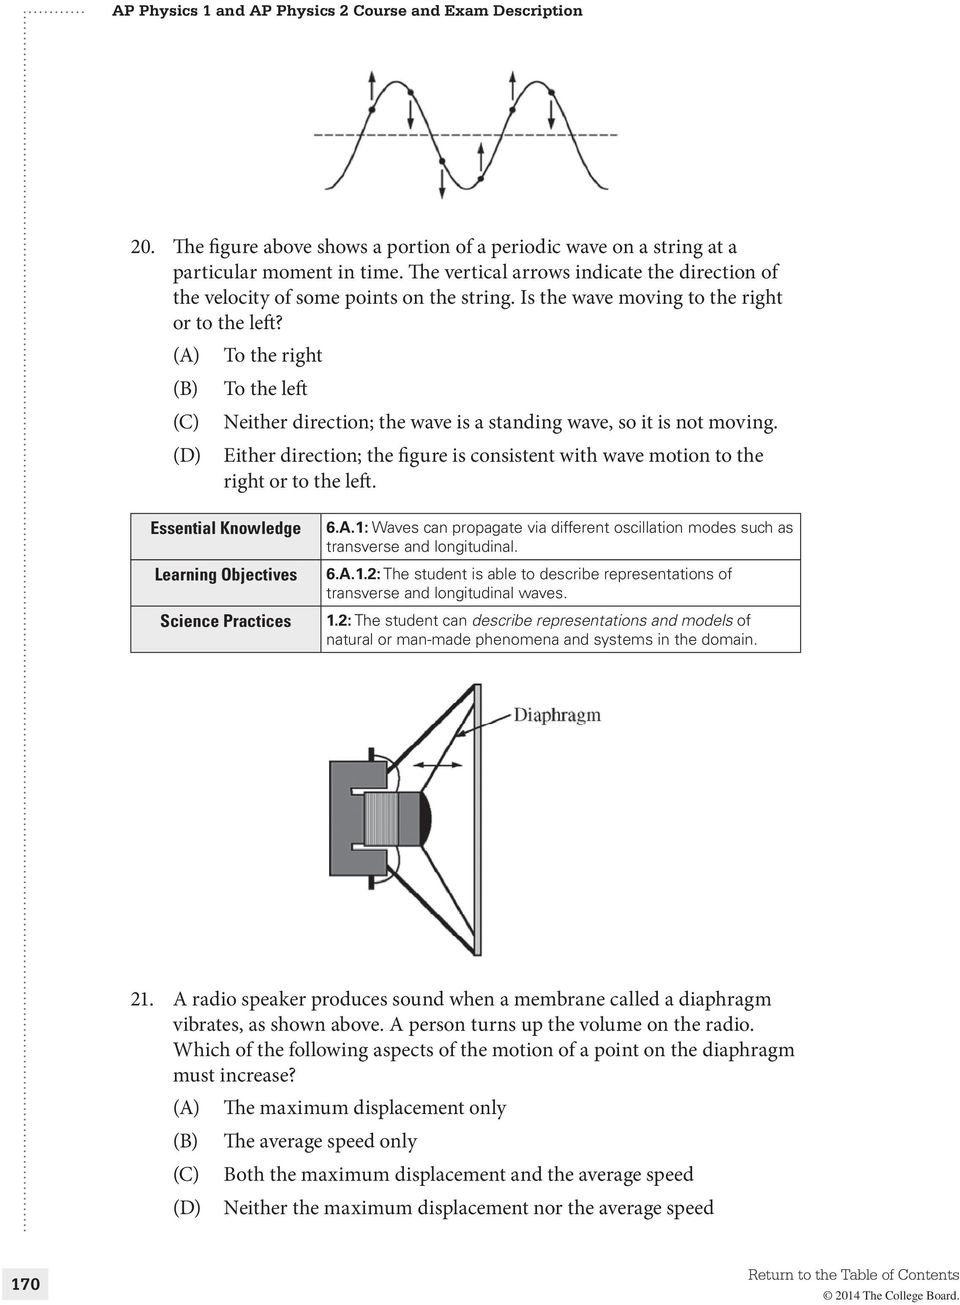 Sample Questions for the AP Physics 1 Exam - PDF